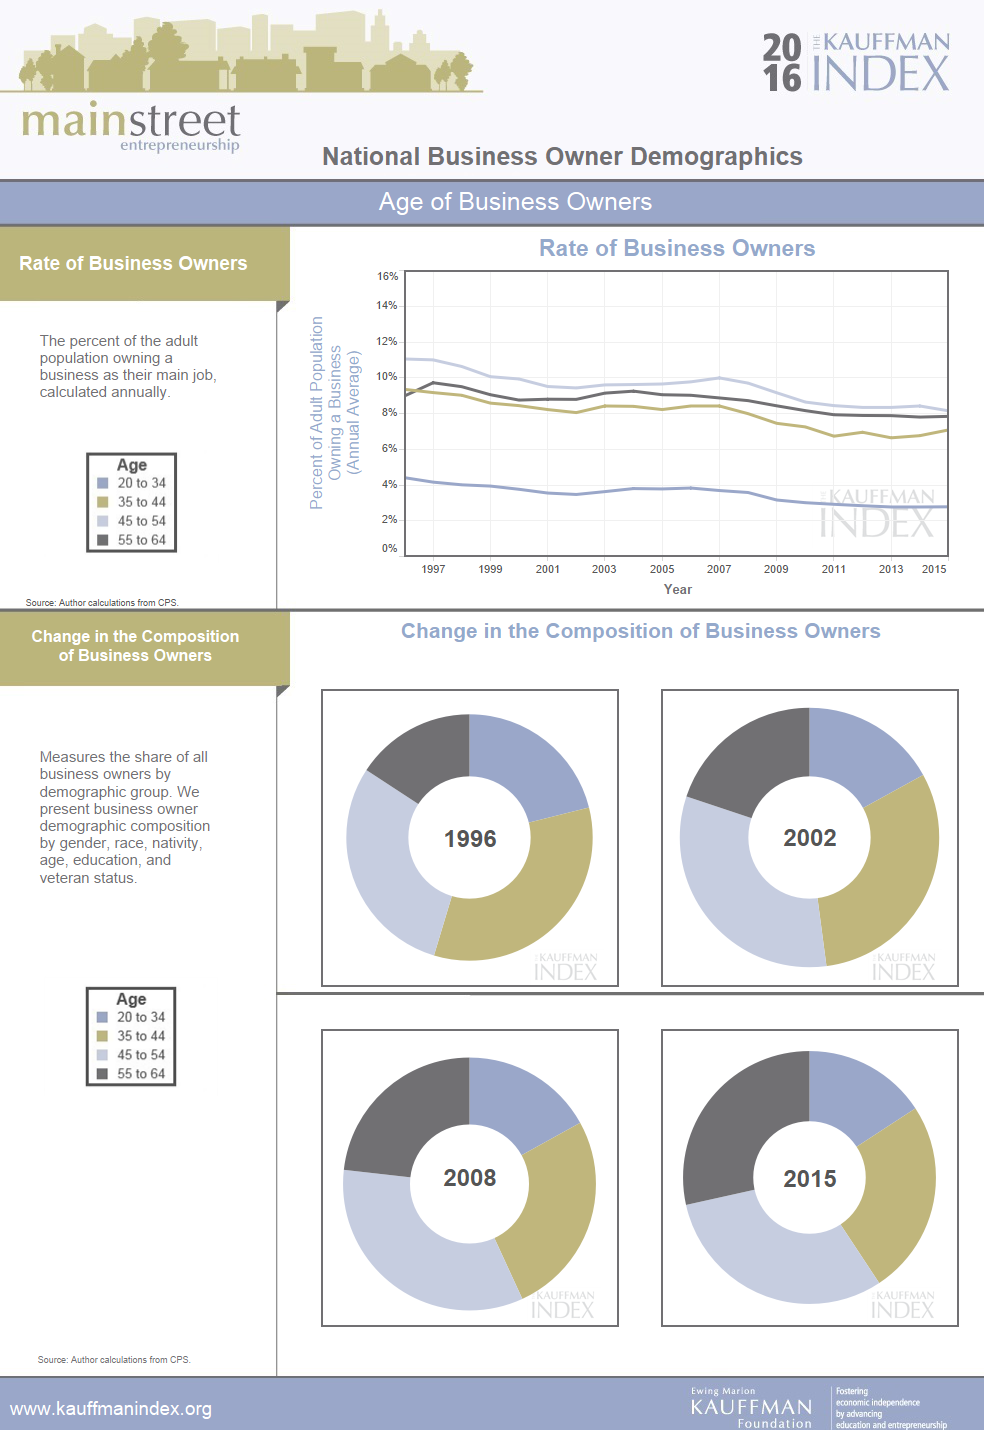 Kauffman Index - 2016 - Main Street - Entrepreneurial Demographics Profiles (2).png